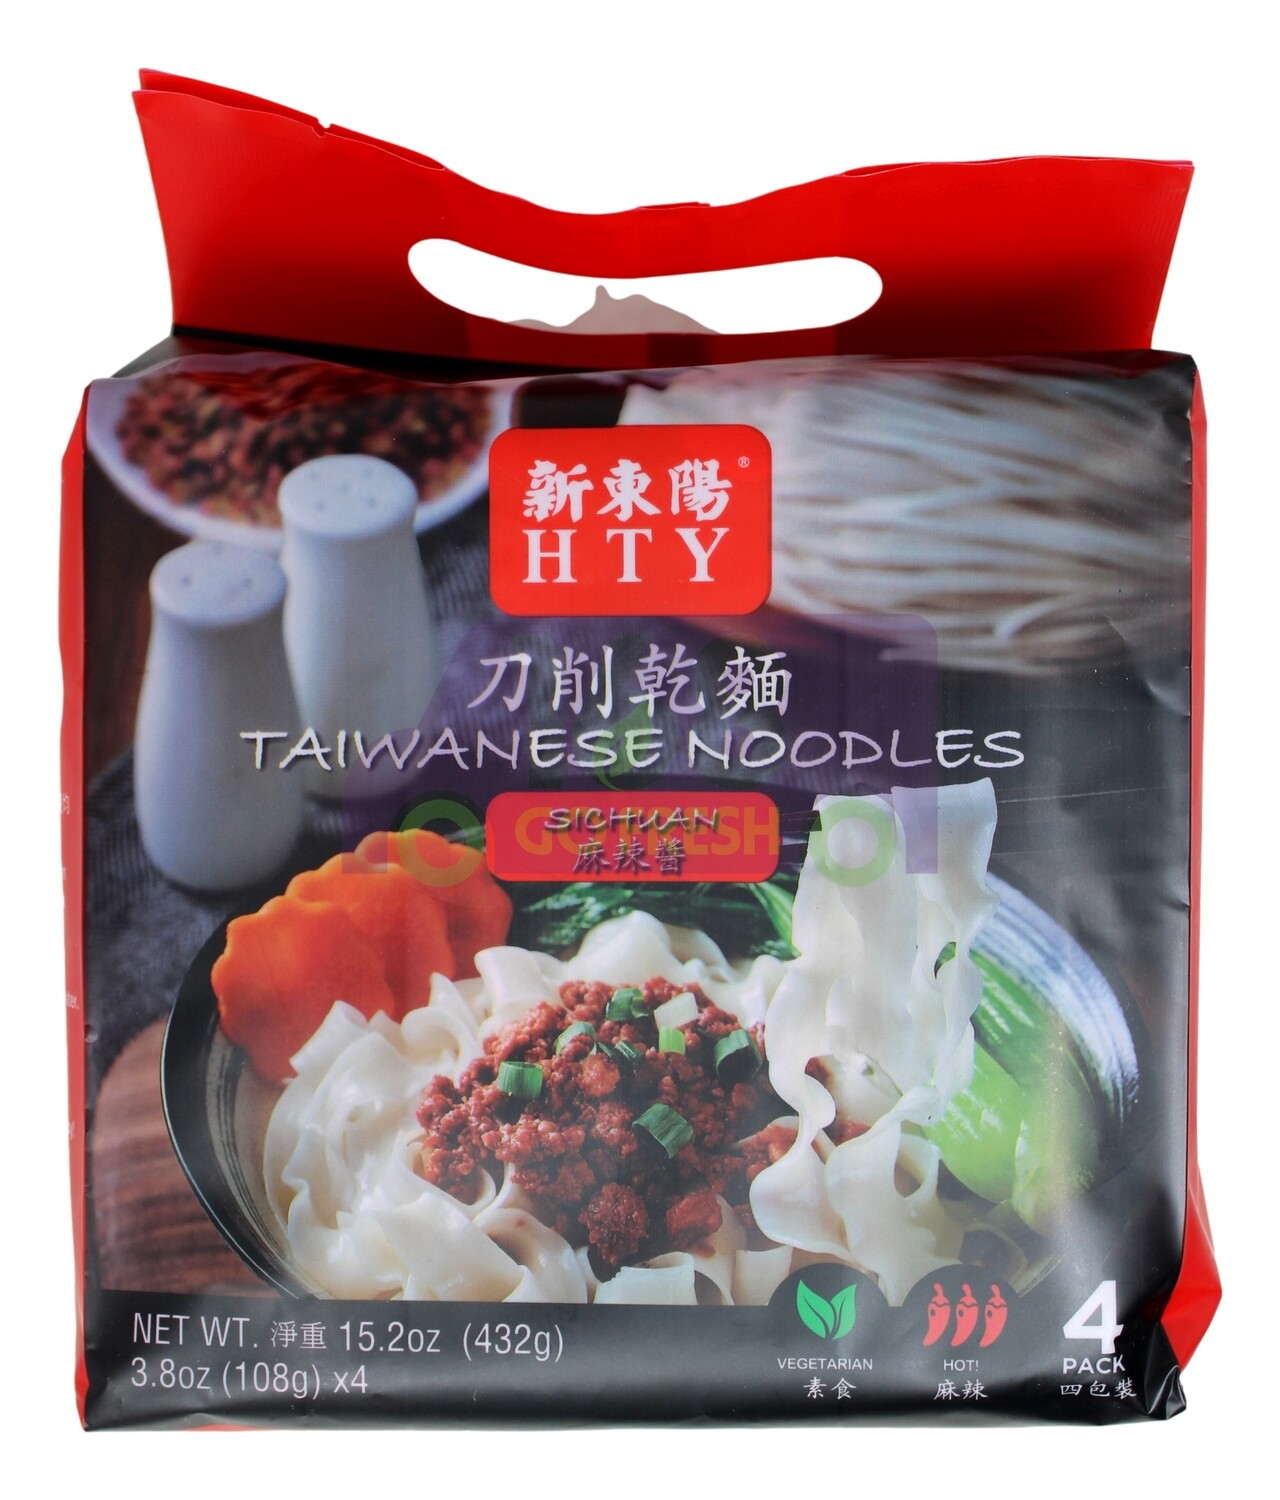 HTW TAIWANESE NOODLES-SPICY 新东阳 刀削干面 麻辣酱(4小包)